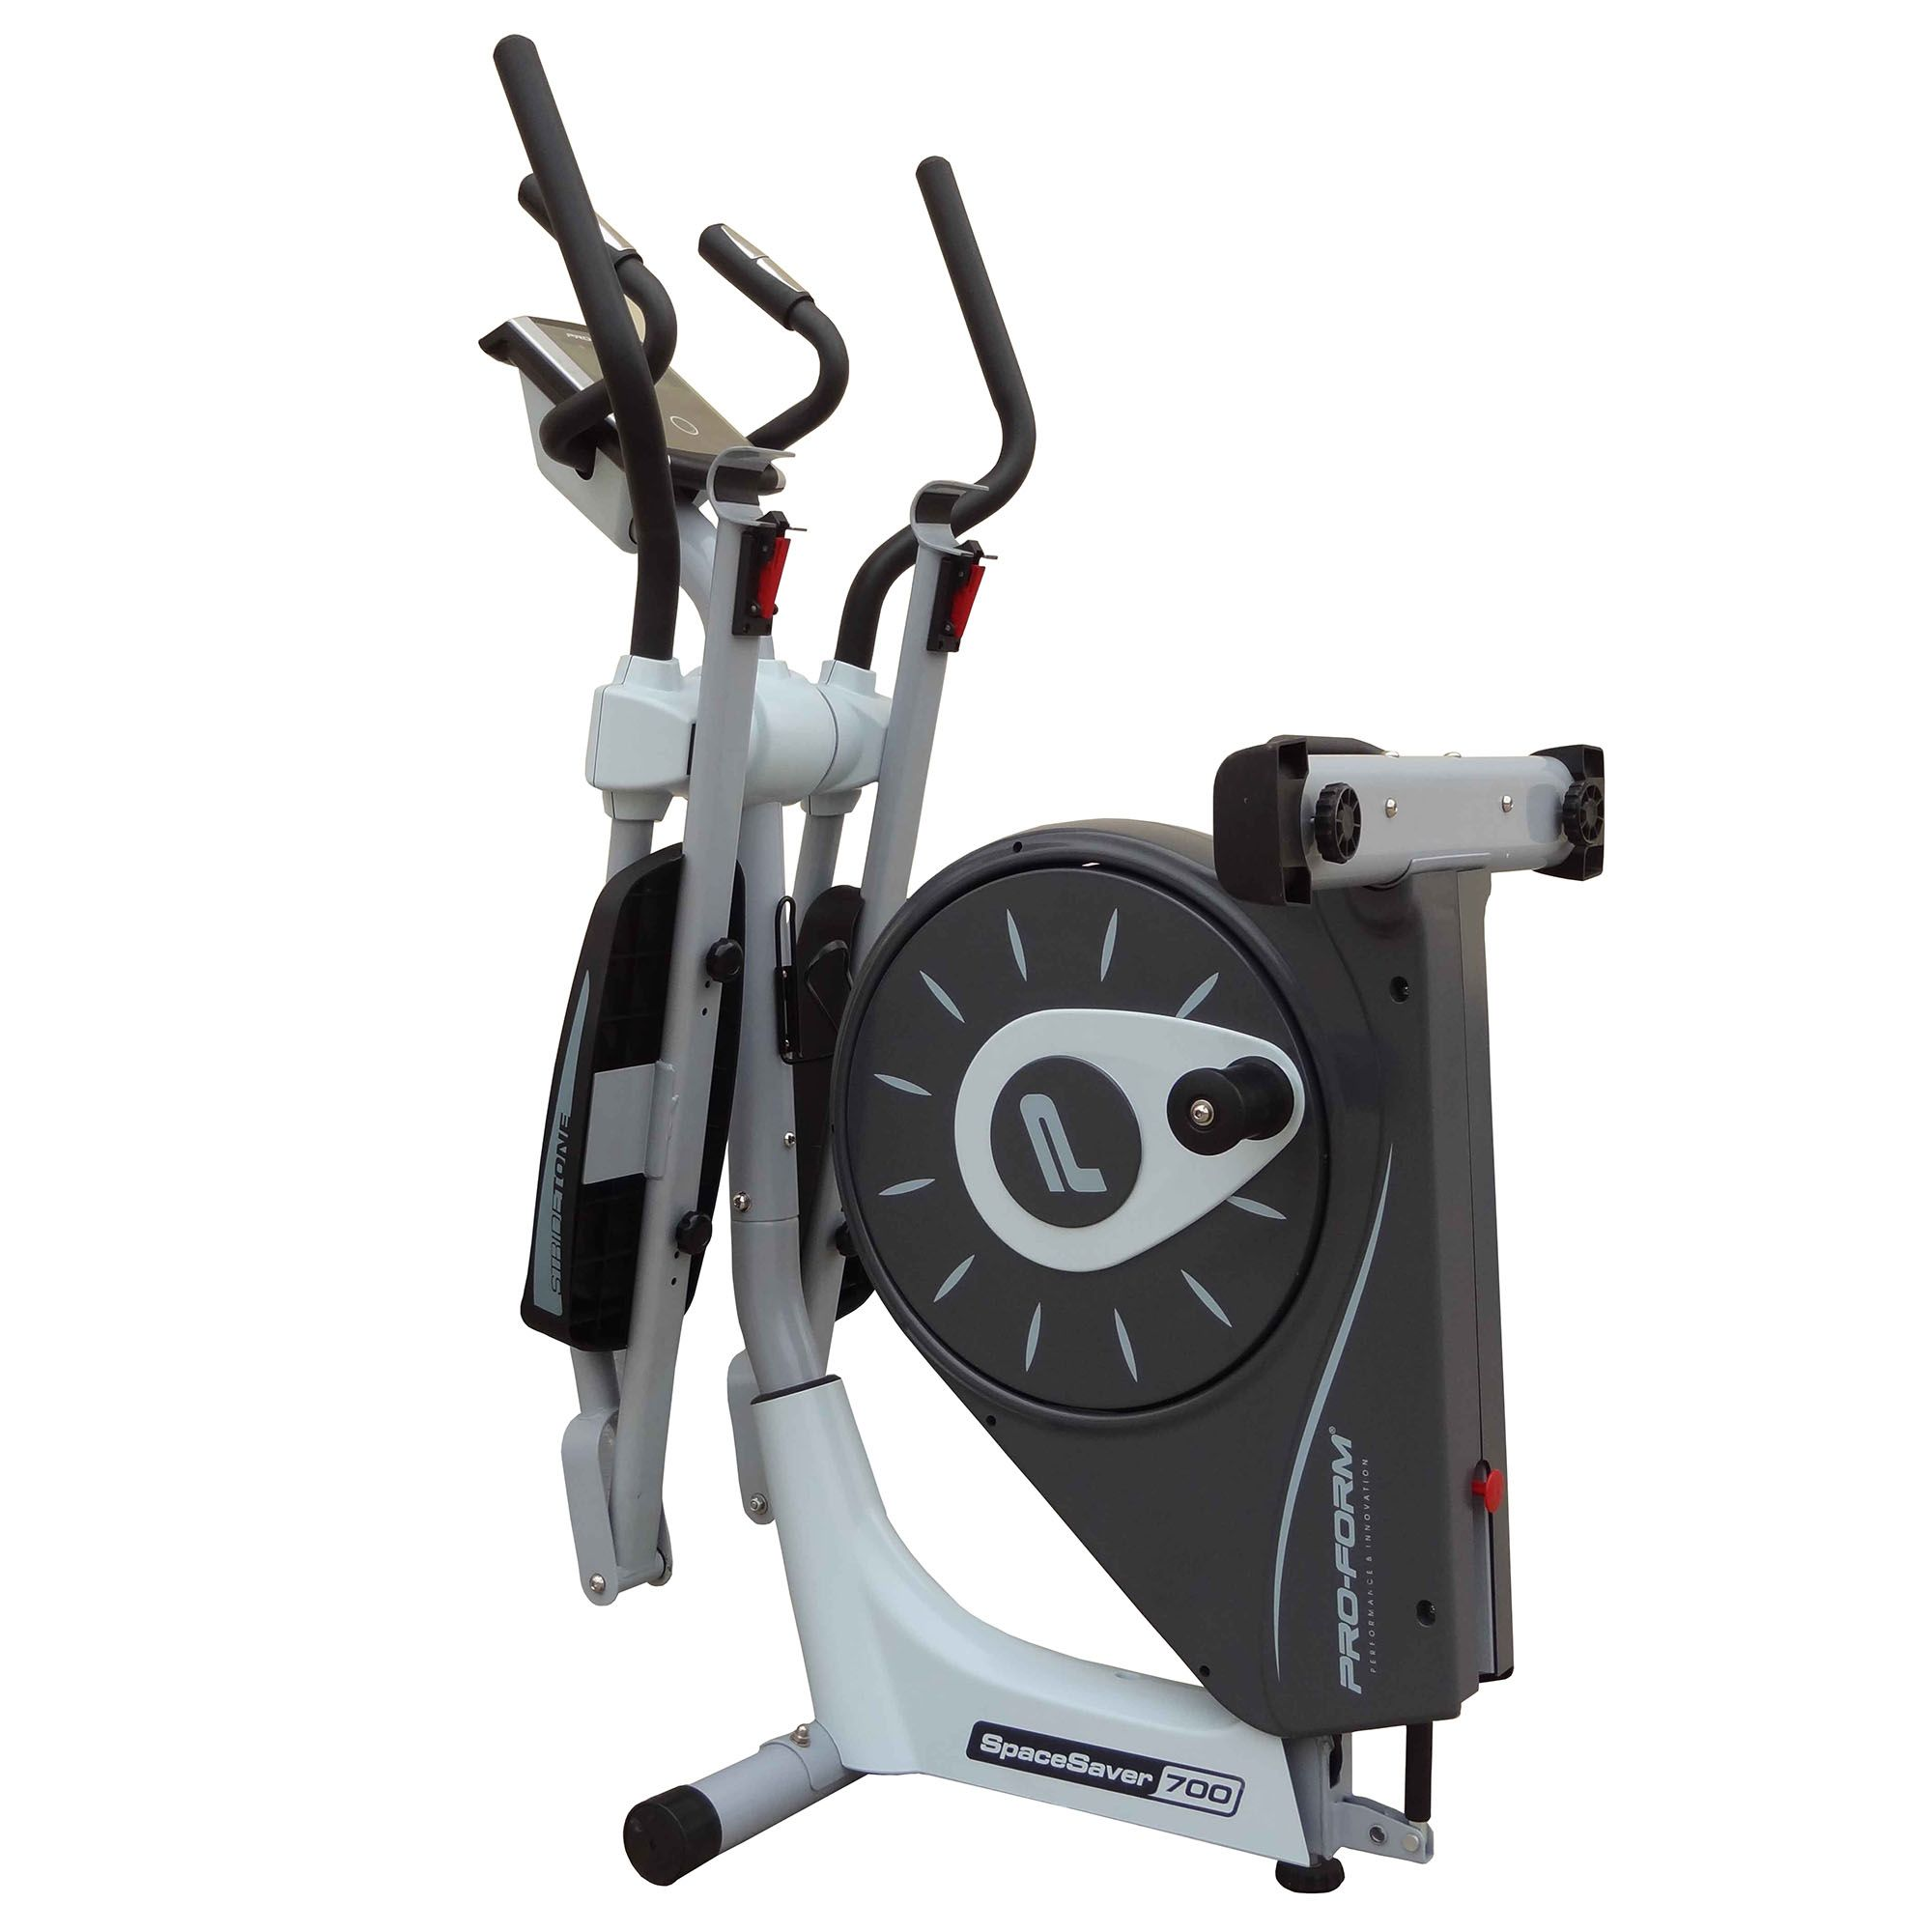 proform 700 folding elliptical cross trainer. Black Bedroom Furniture Sets. Home Design Ideas